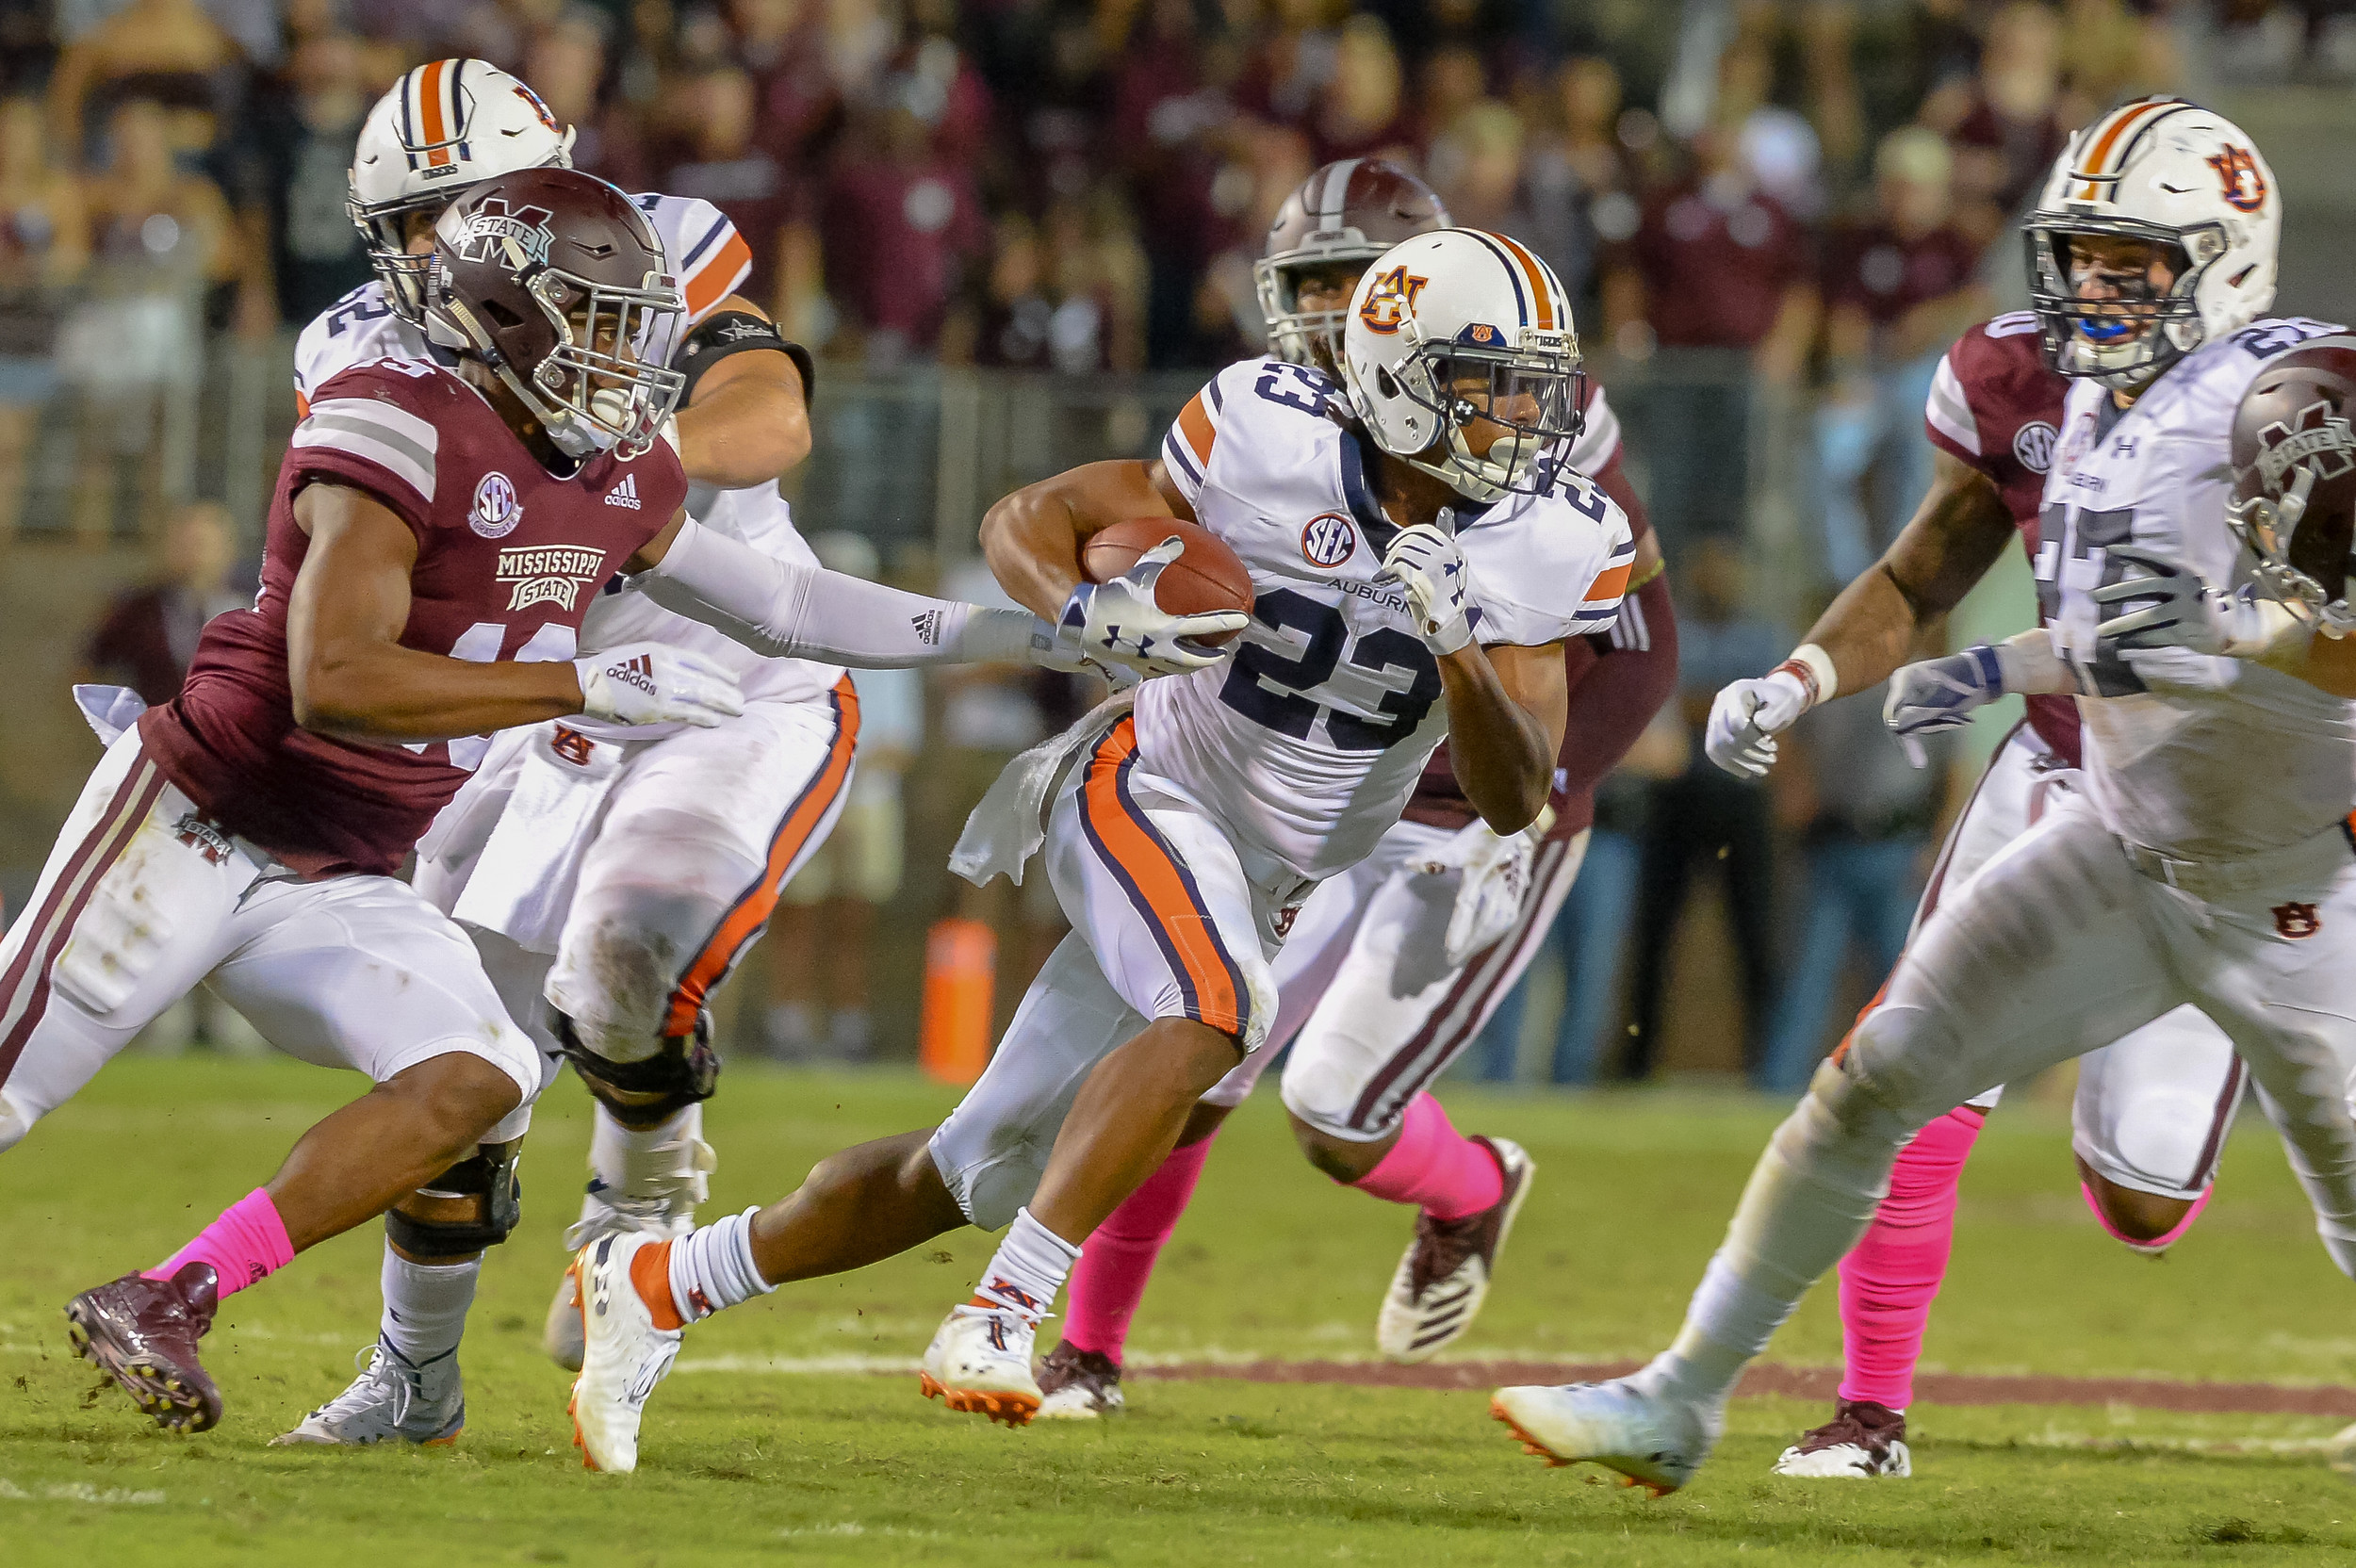 Auburn Tigers wide receiver Ryan Davis (23) runs after making a catch during the second half of Saturday's game, at Davis Wade Stadium in Starkville, MS. Daily Mountain Eagle -  Jeff Johnsey